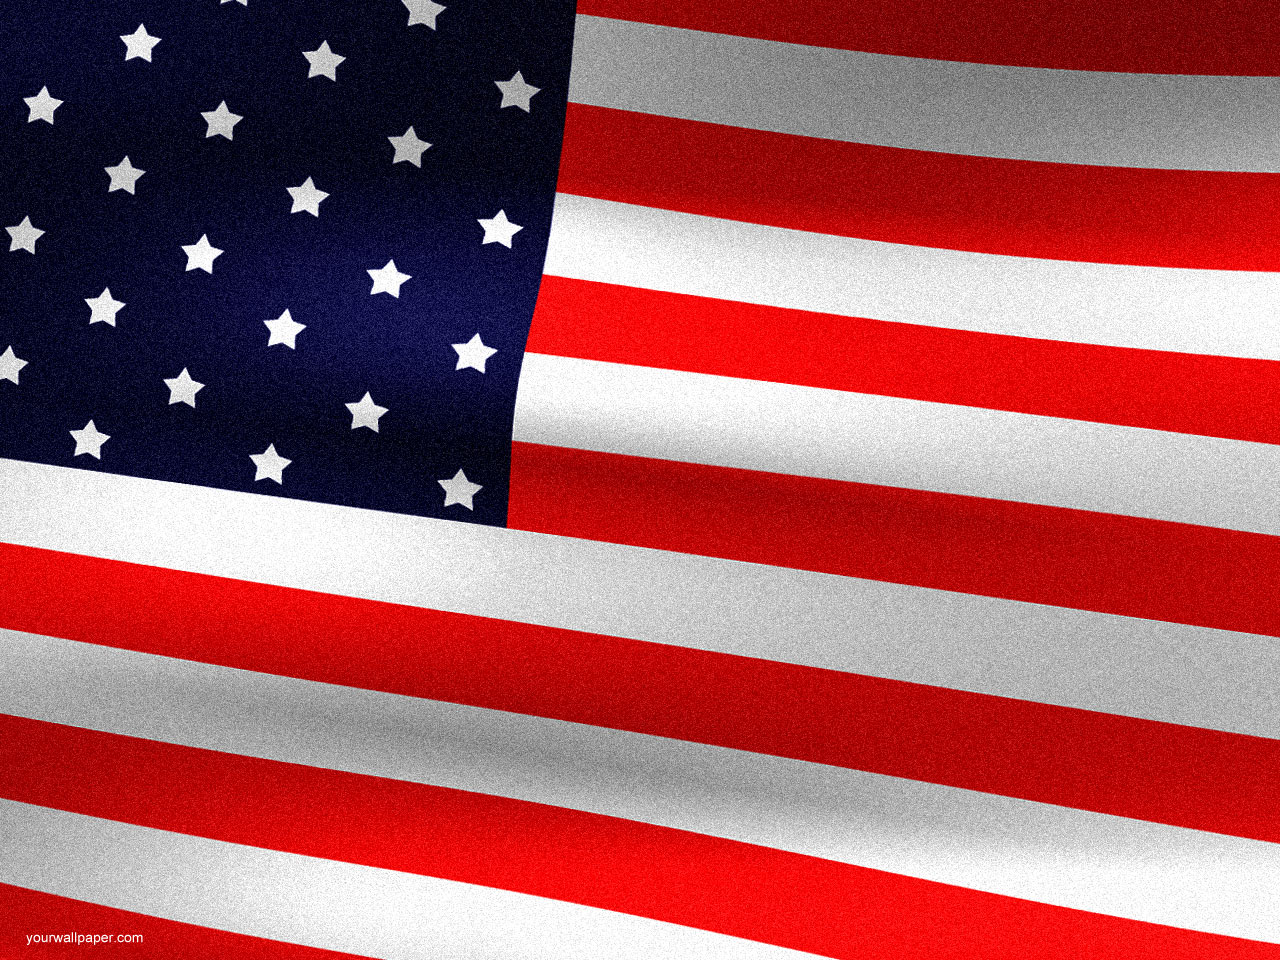 Flag Desktop Background: Free American Flag Desktop Wallpaper